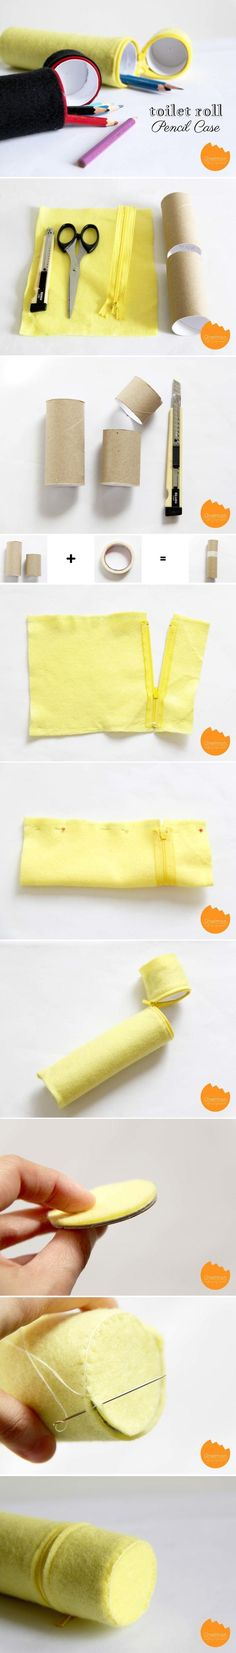 DIY Toilet Roll Pencil Case with Felt - Tutorial